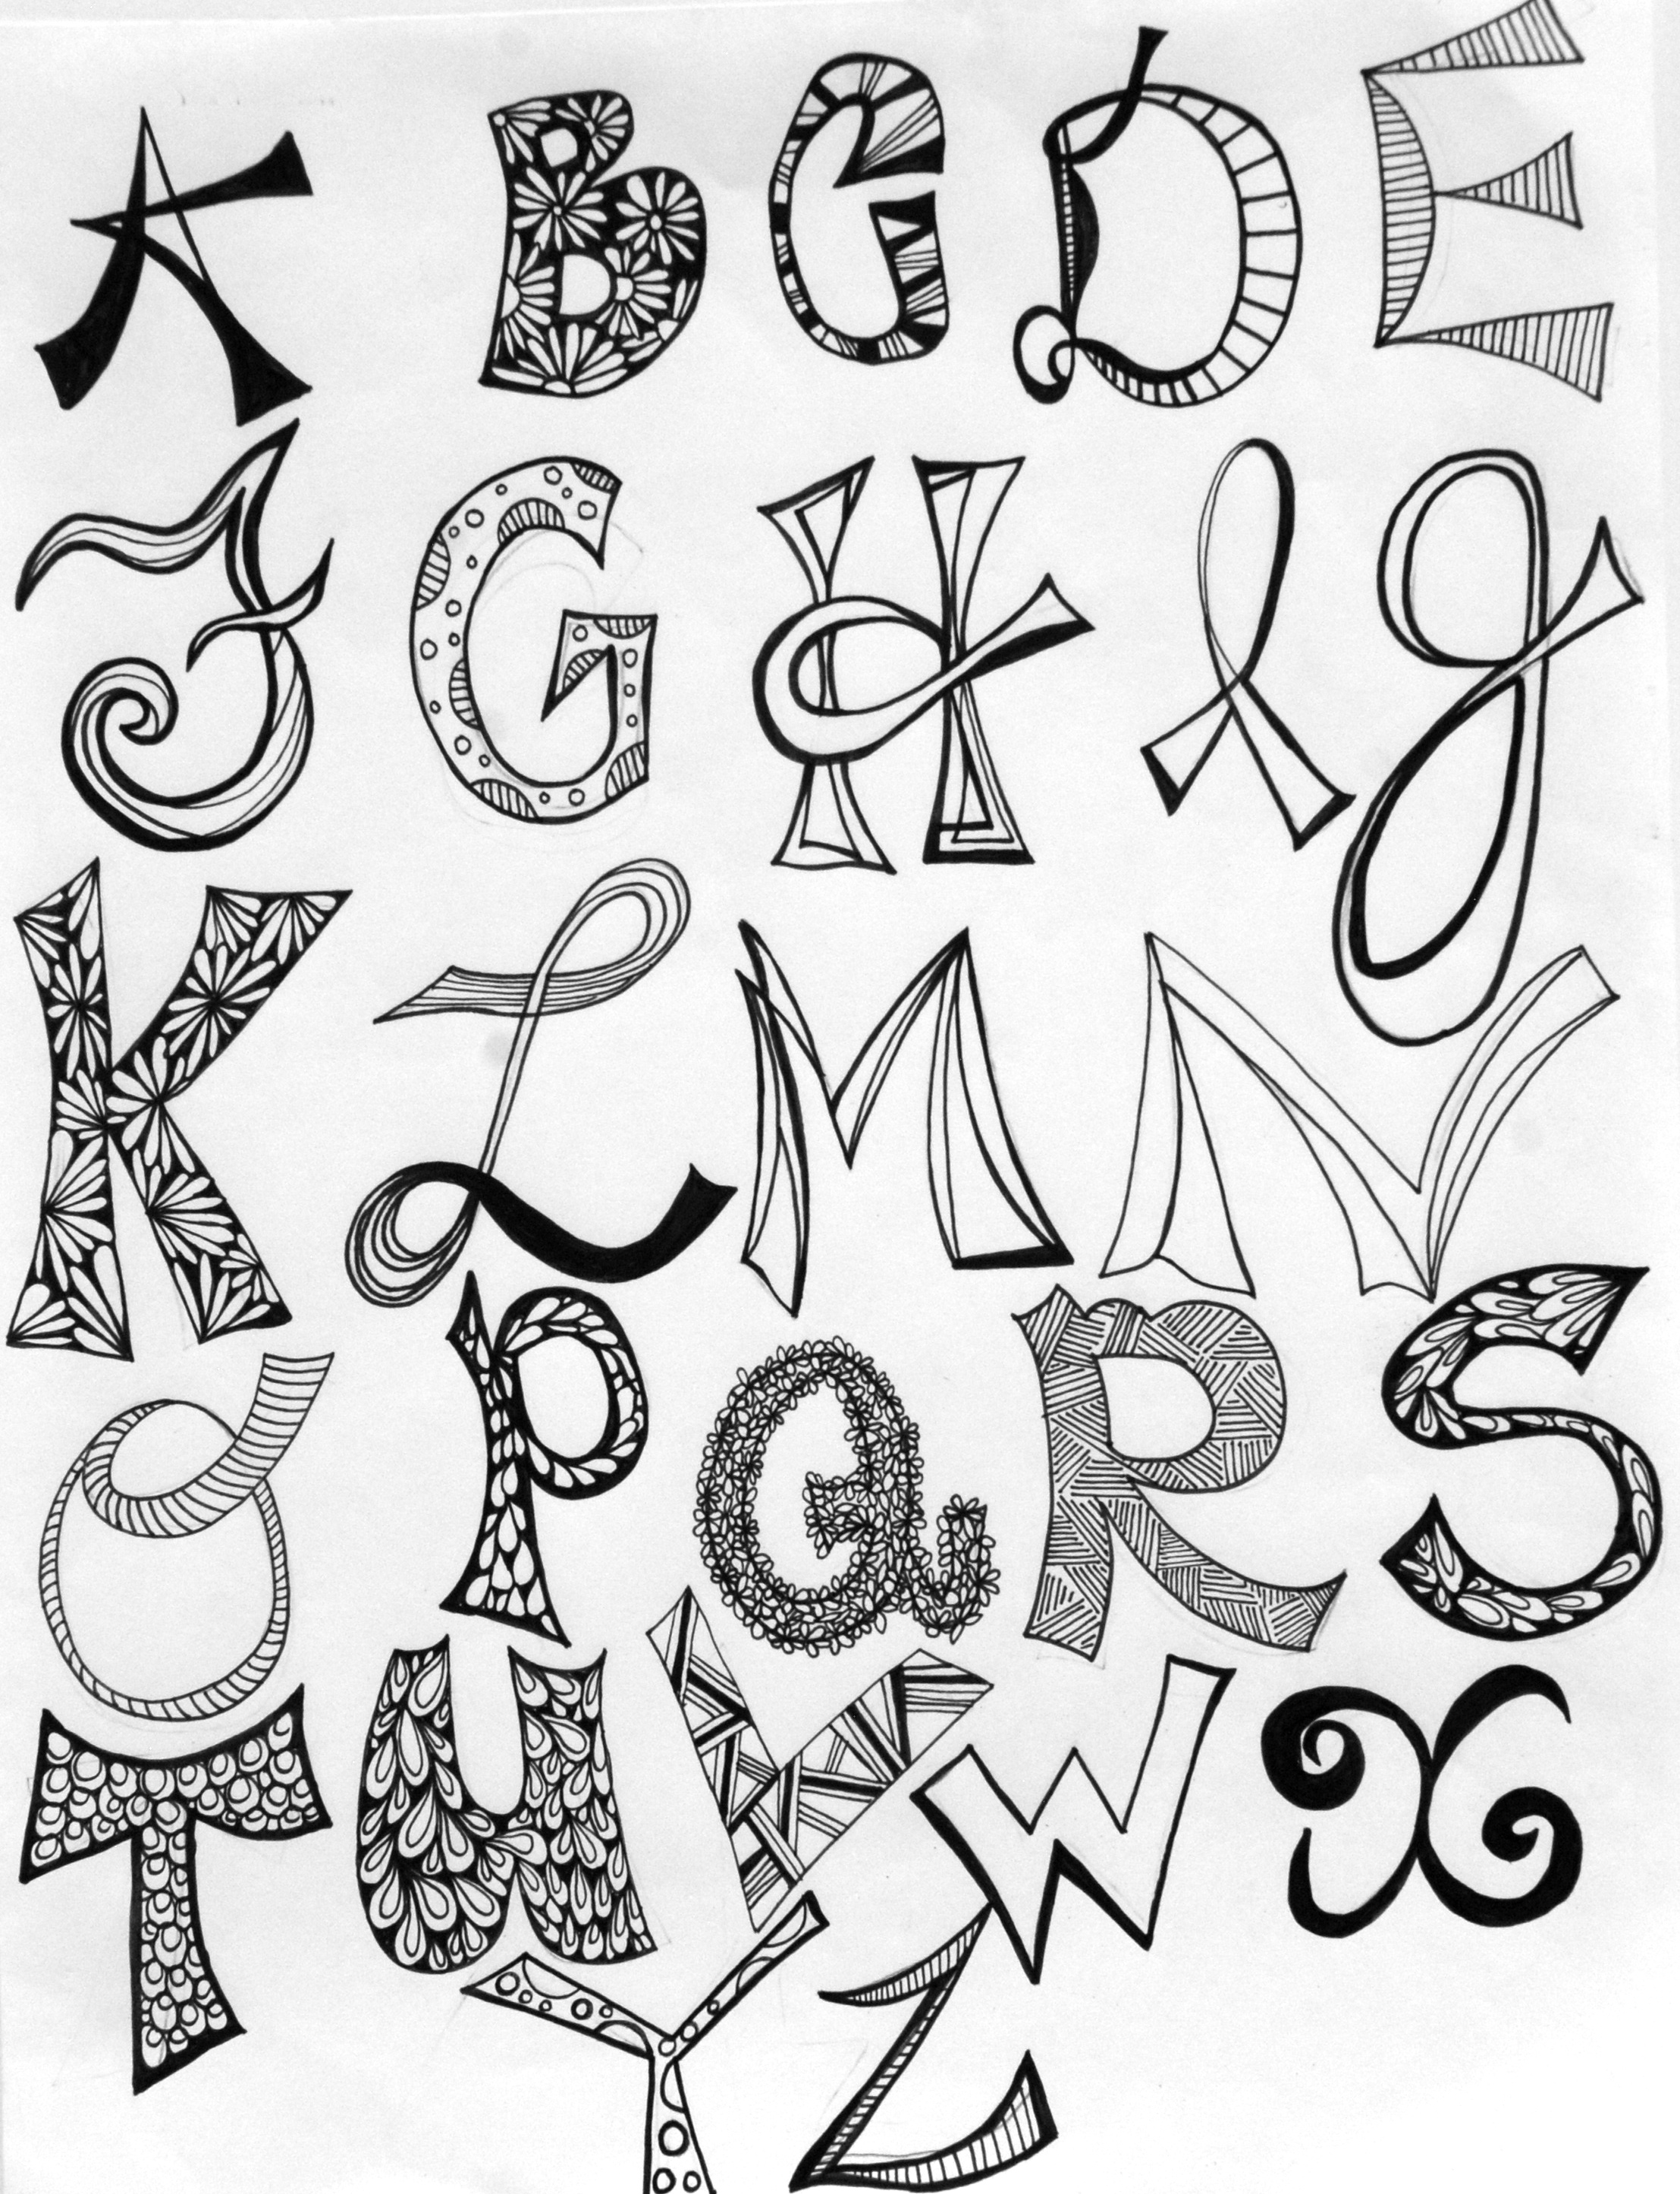 Old English Letters Drawing at GetDrawings com | Free for